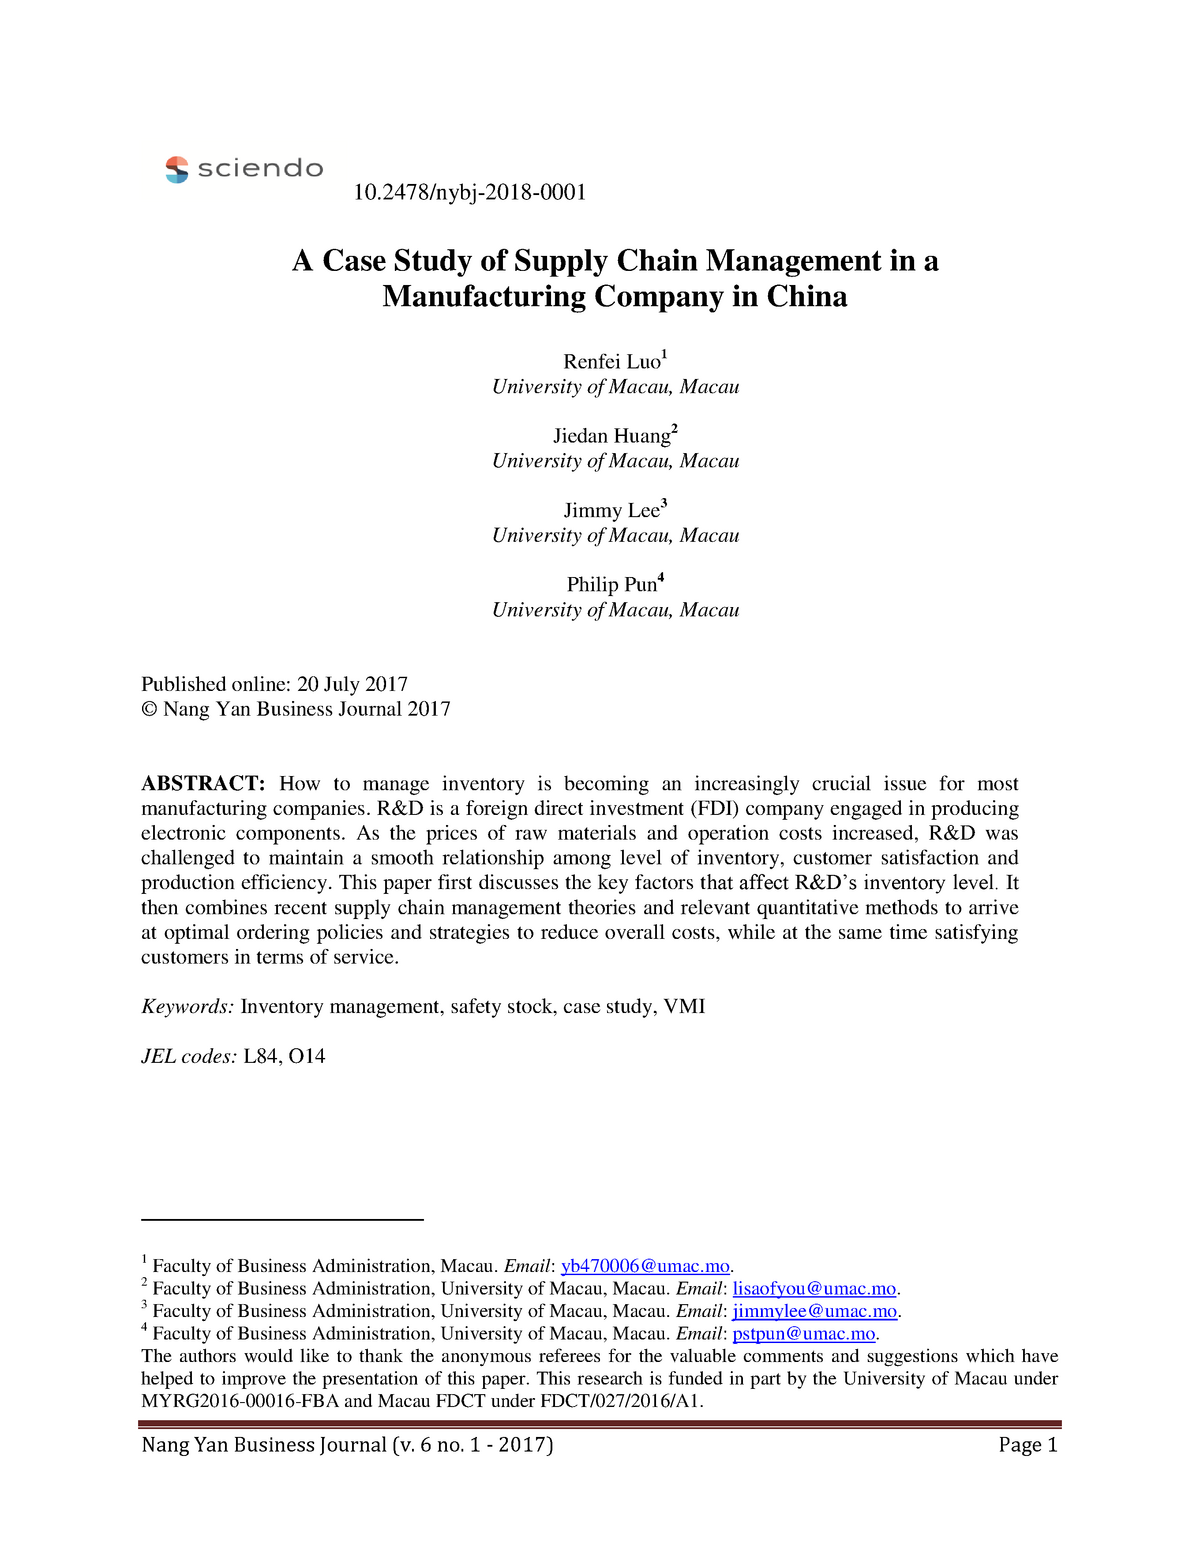 A Case Study of Supply Chain Management in a Manufacturing Company